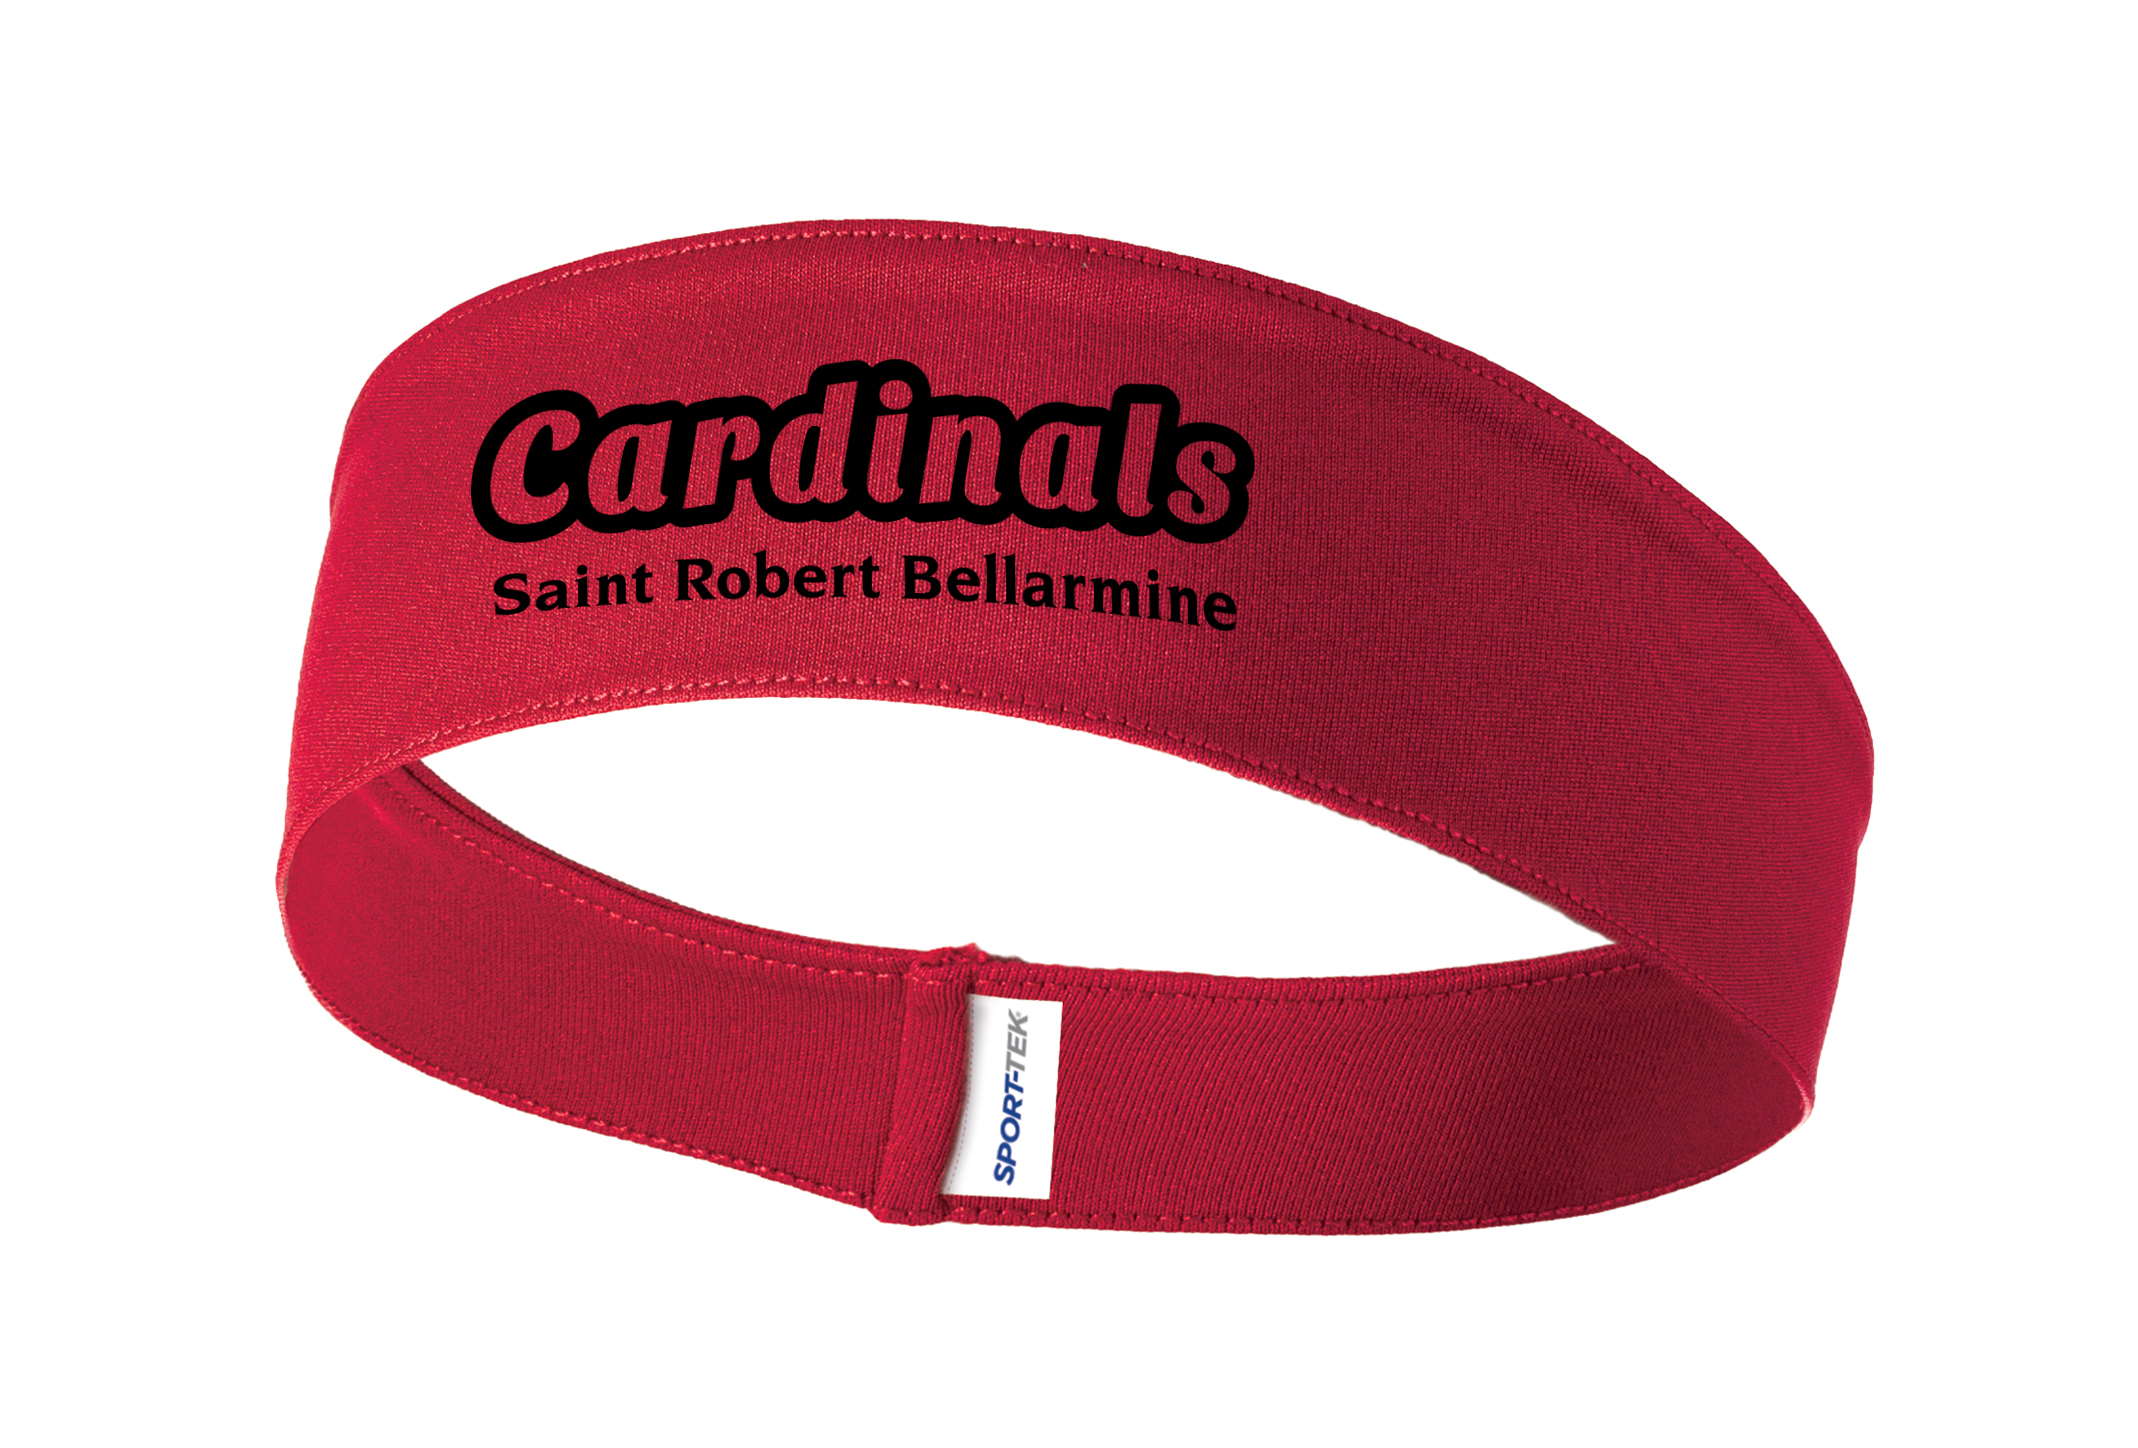 St Roberts Sport Tek Posicharge Competitor Headband These tees are perfect for everyday casual wear, outdoor adventures. st roberts sport tek posicharge competitor headband